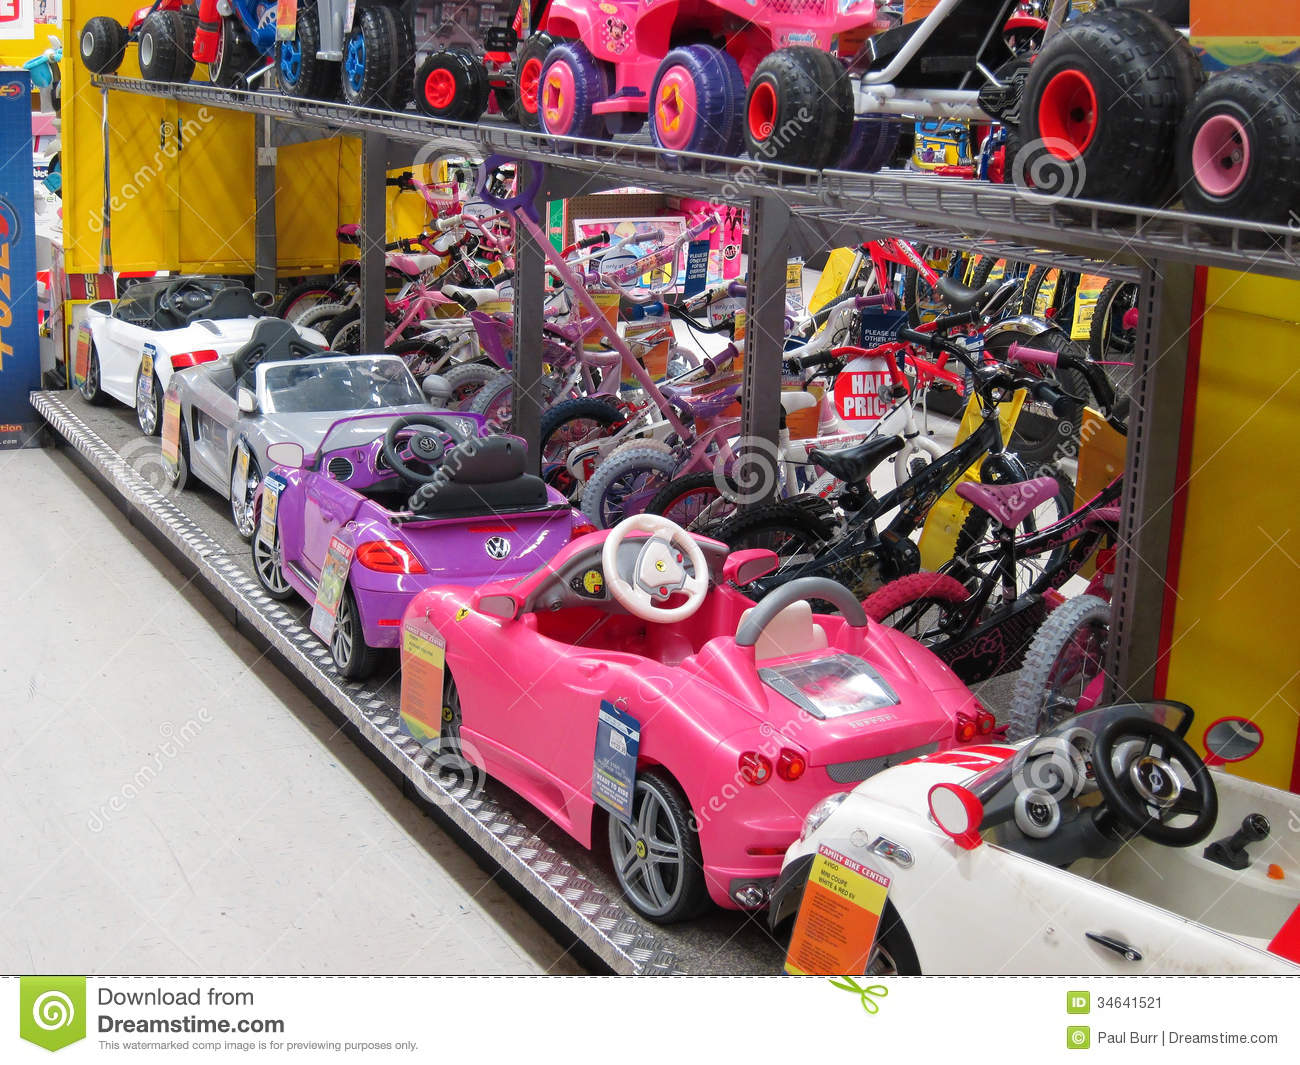 Toy Cars For Toys : Toy electric cars in a store editorial photo image